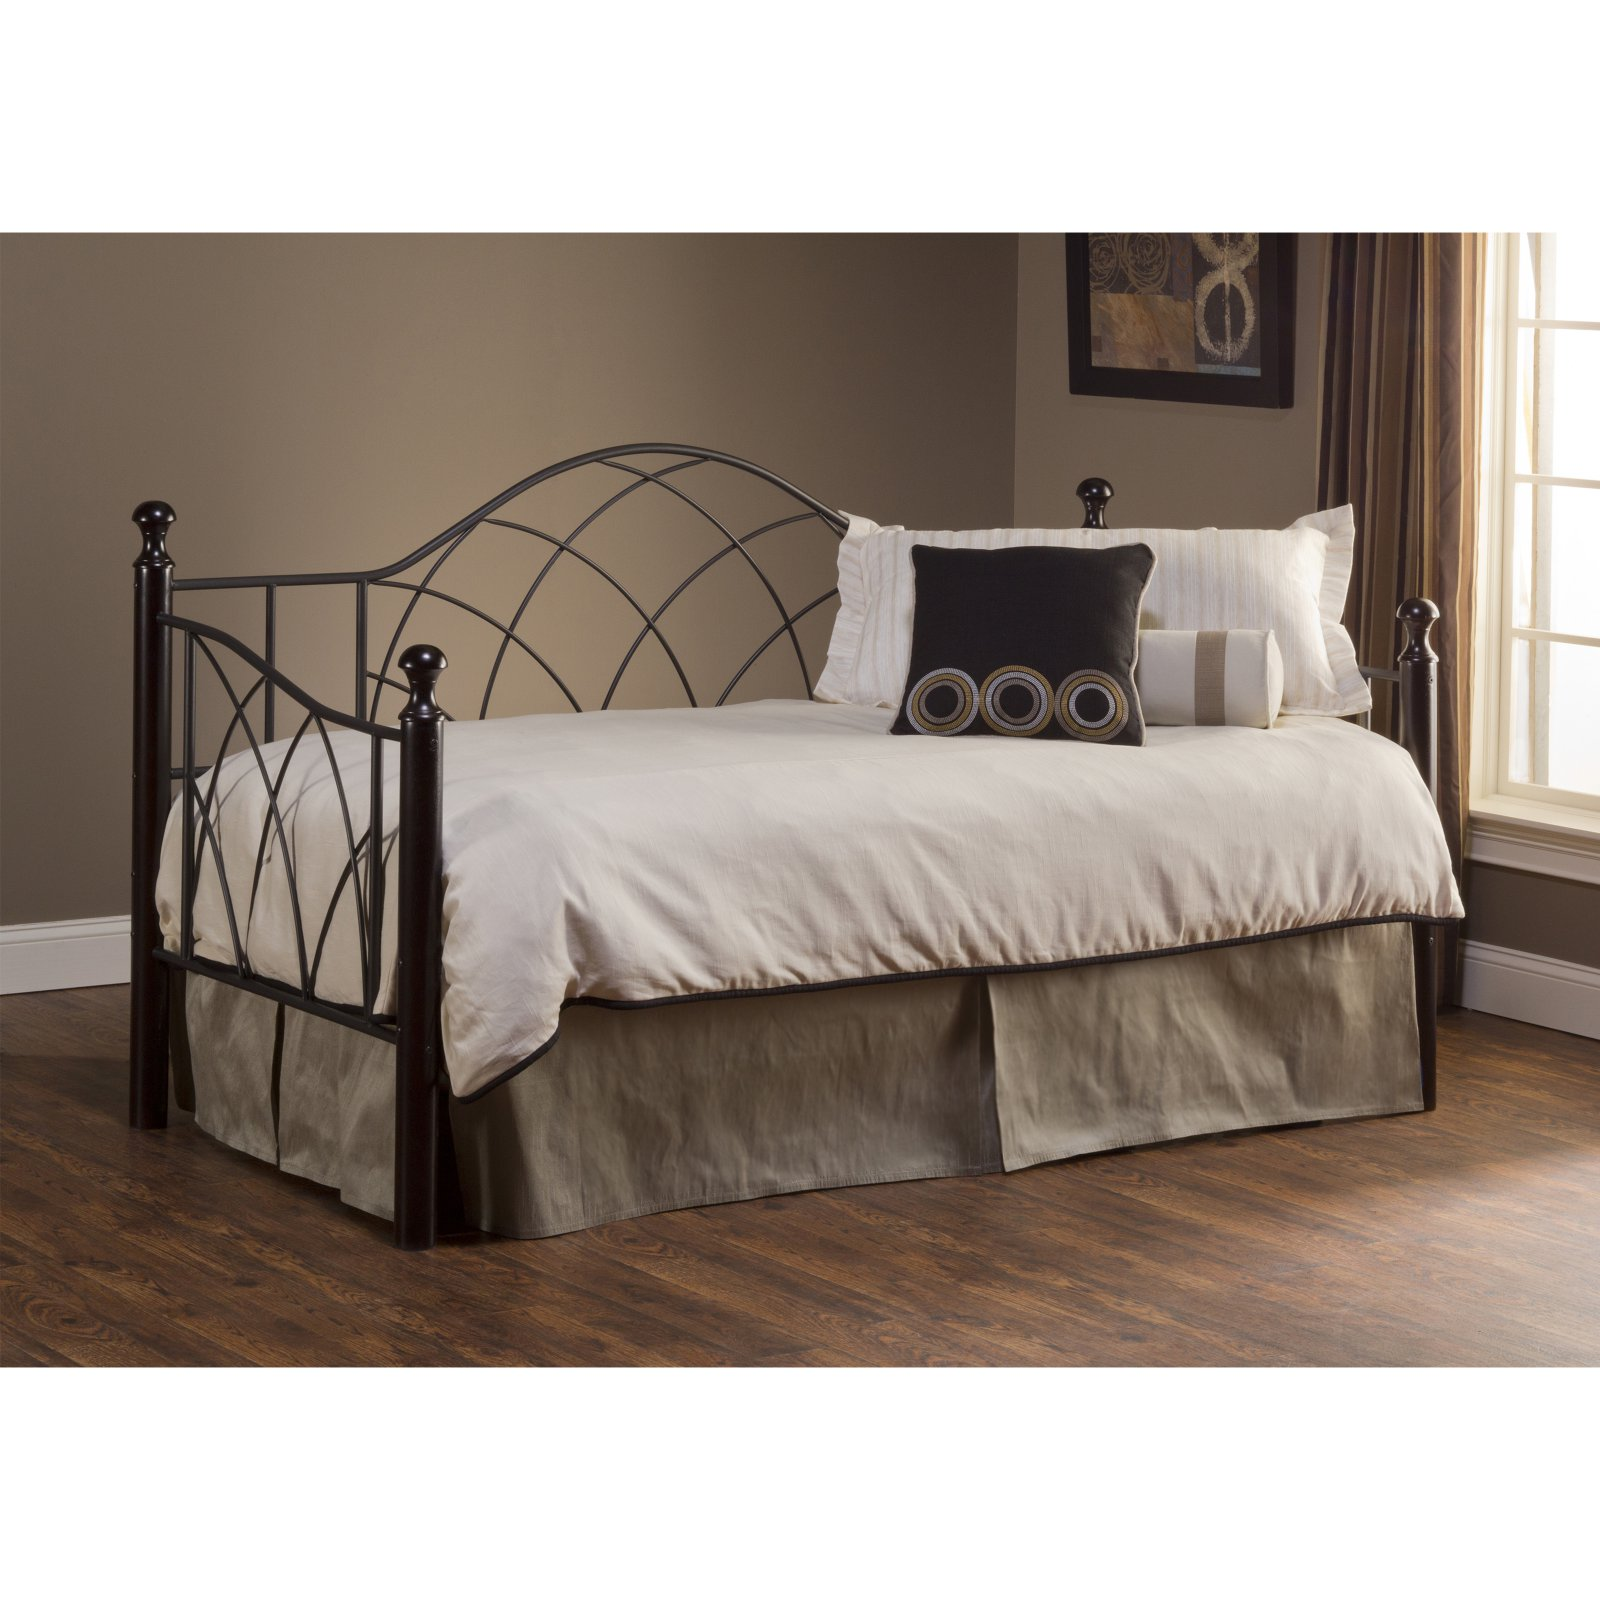 Roll-Out Trundle Bed, Twin -Component by Hillsdale Furniture